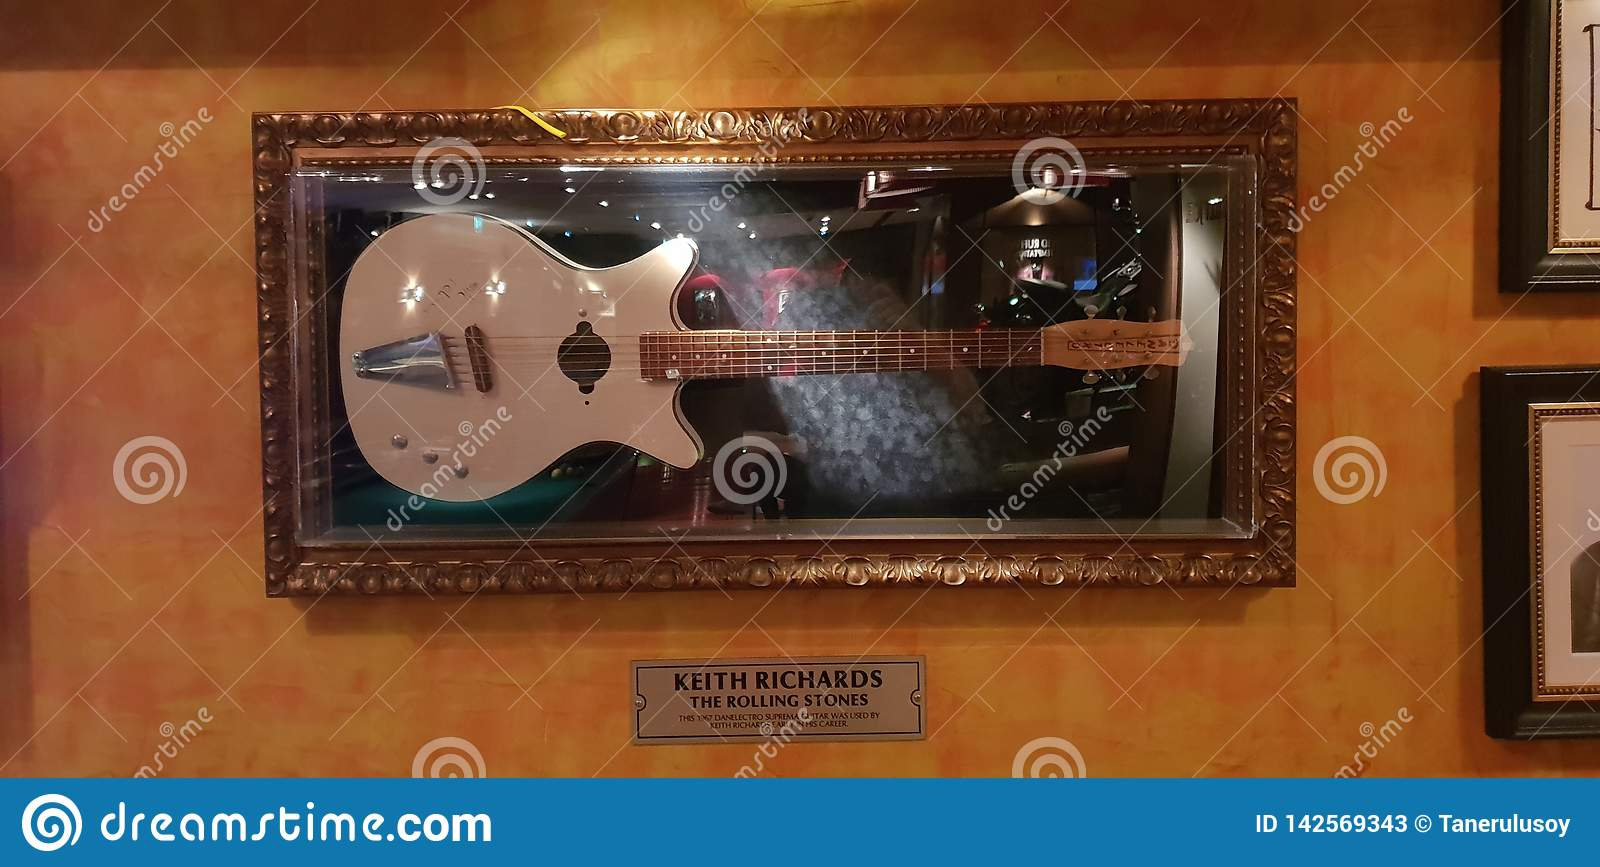 Guitarra de Keith Richards